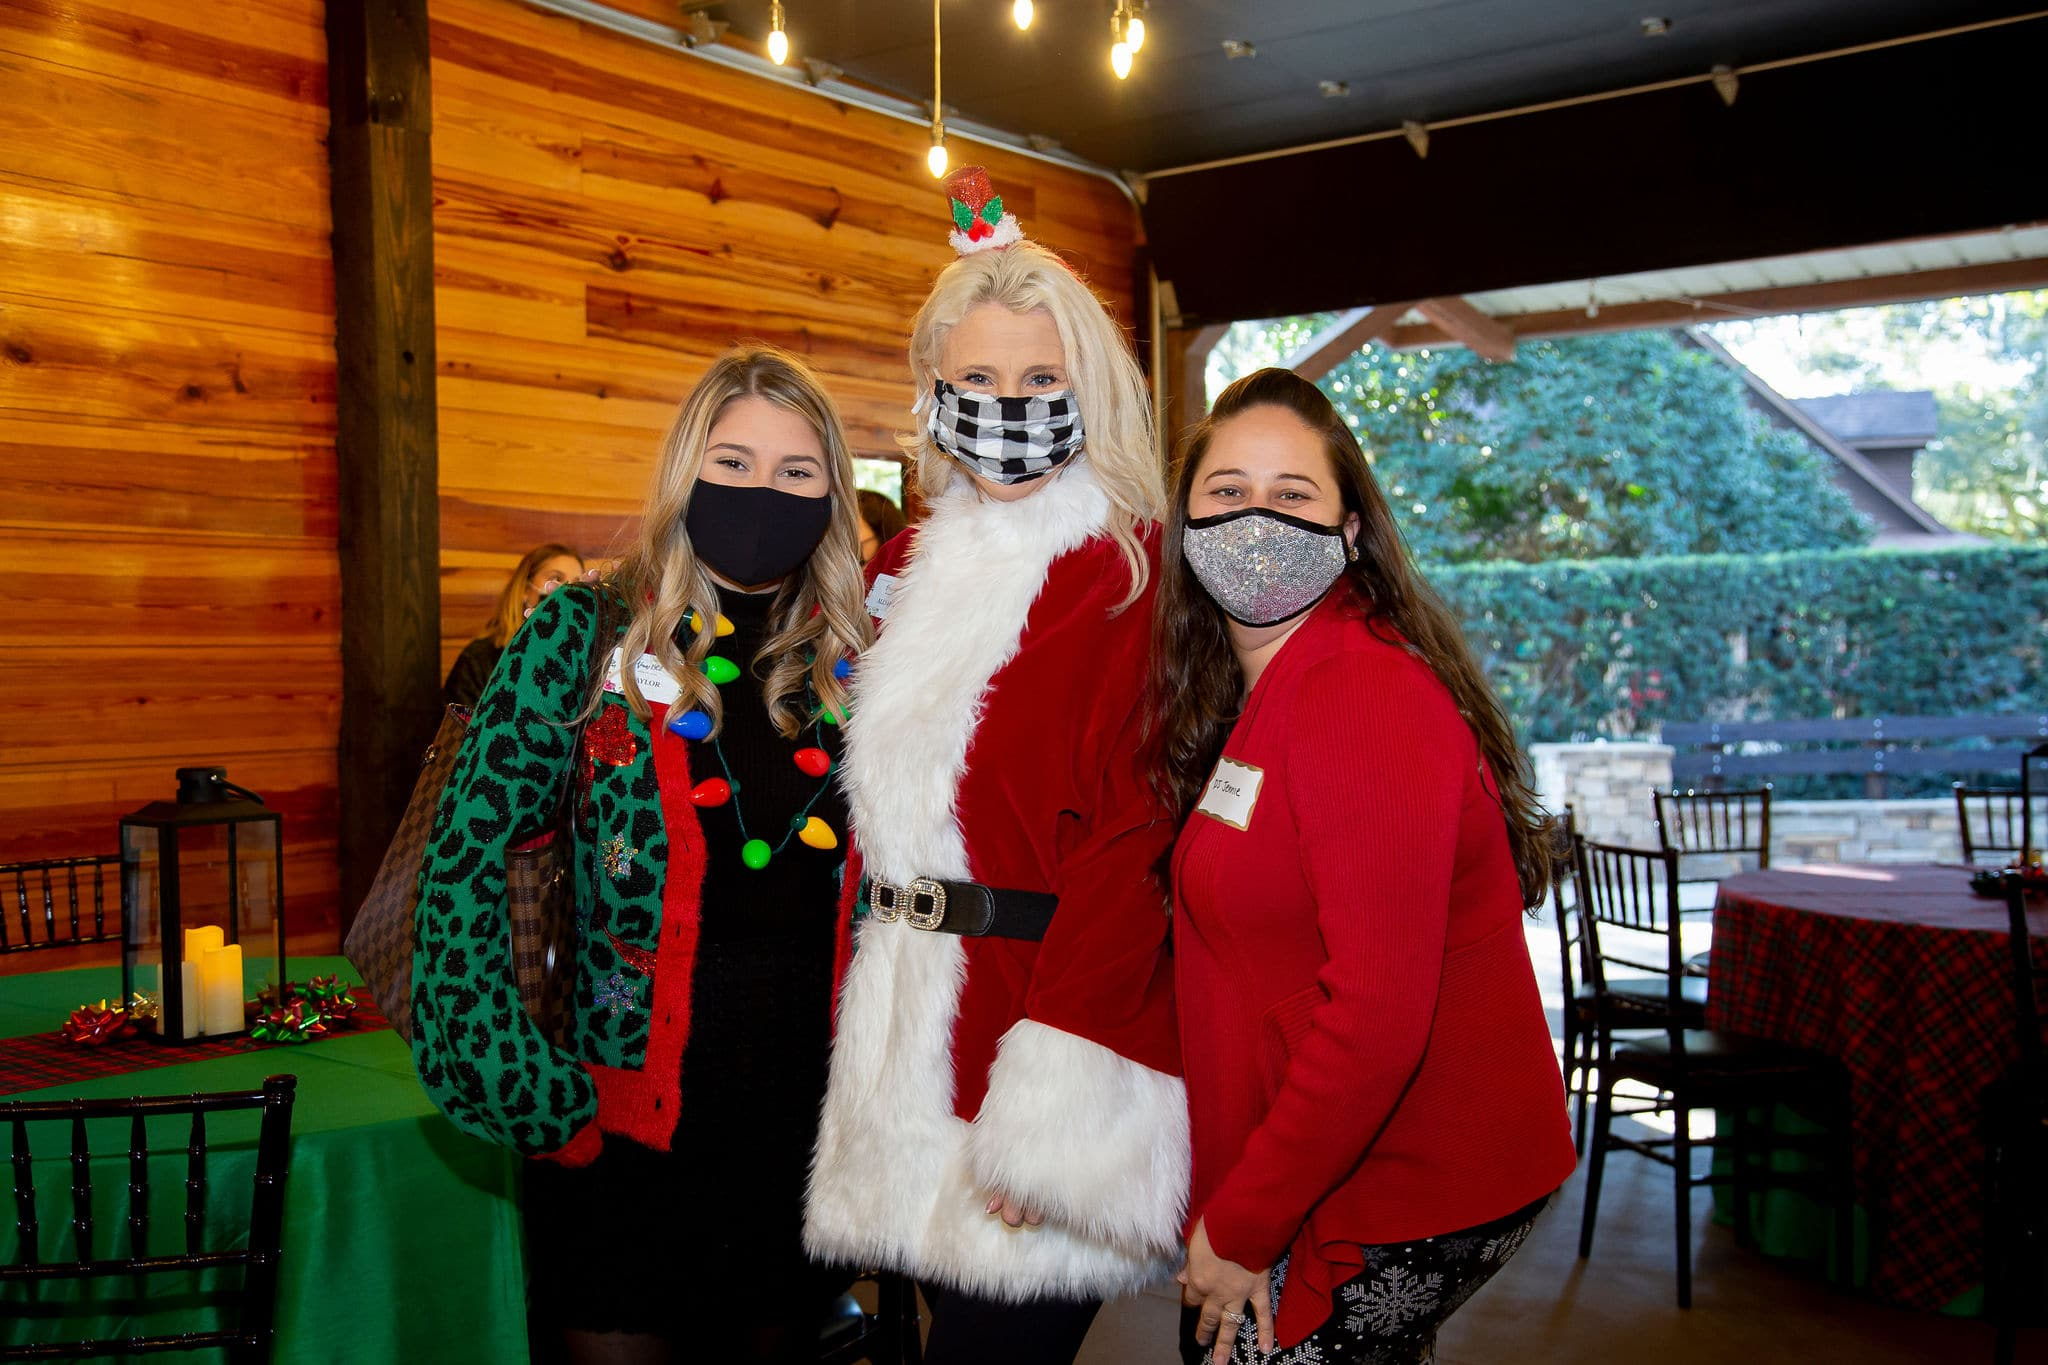 three woman stand together for a photo the one on the left wearing a green leopard print sweater with light up christmas lights necklace the woman in the middle wear big red and white santa jacket and the woman on the right wears a glitter face covering with a red sweater